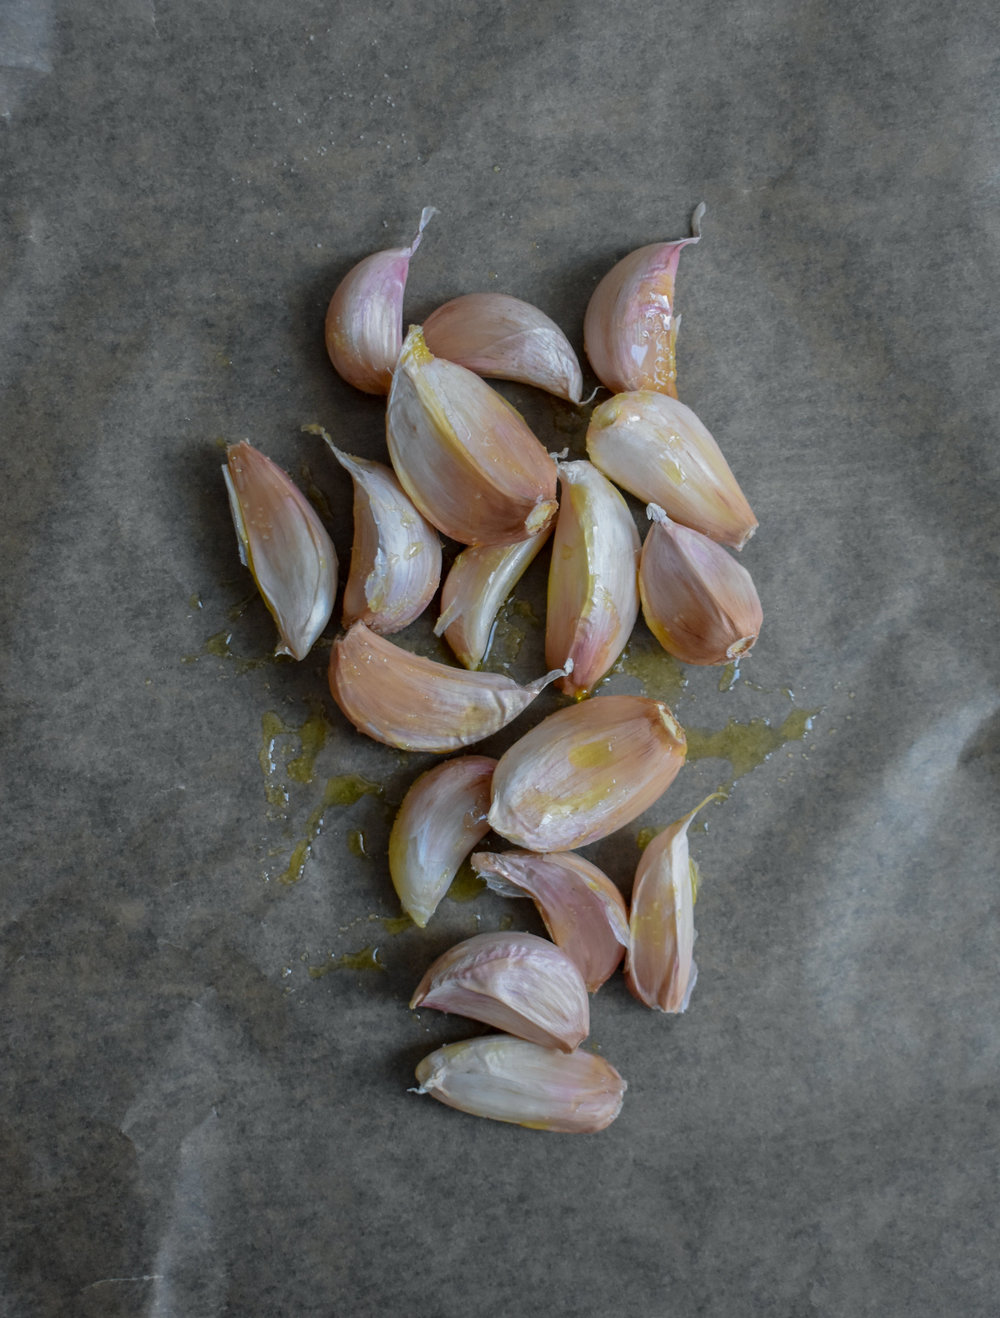 2. While the dough rises and cashews are soaking, we will begin to roast our garlic. Break all the cloves out of the head but leave the skin on. Coat with 1 tbl of olive oil and a pinch of salt + pepper. Place into oven at 375F and roast for 25-30 minutes in parchment paper or aluminum foil (enclose the cloves int either and make sure sealed tight).